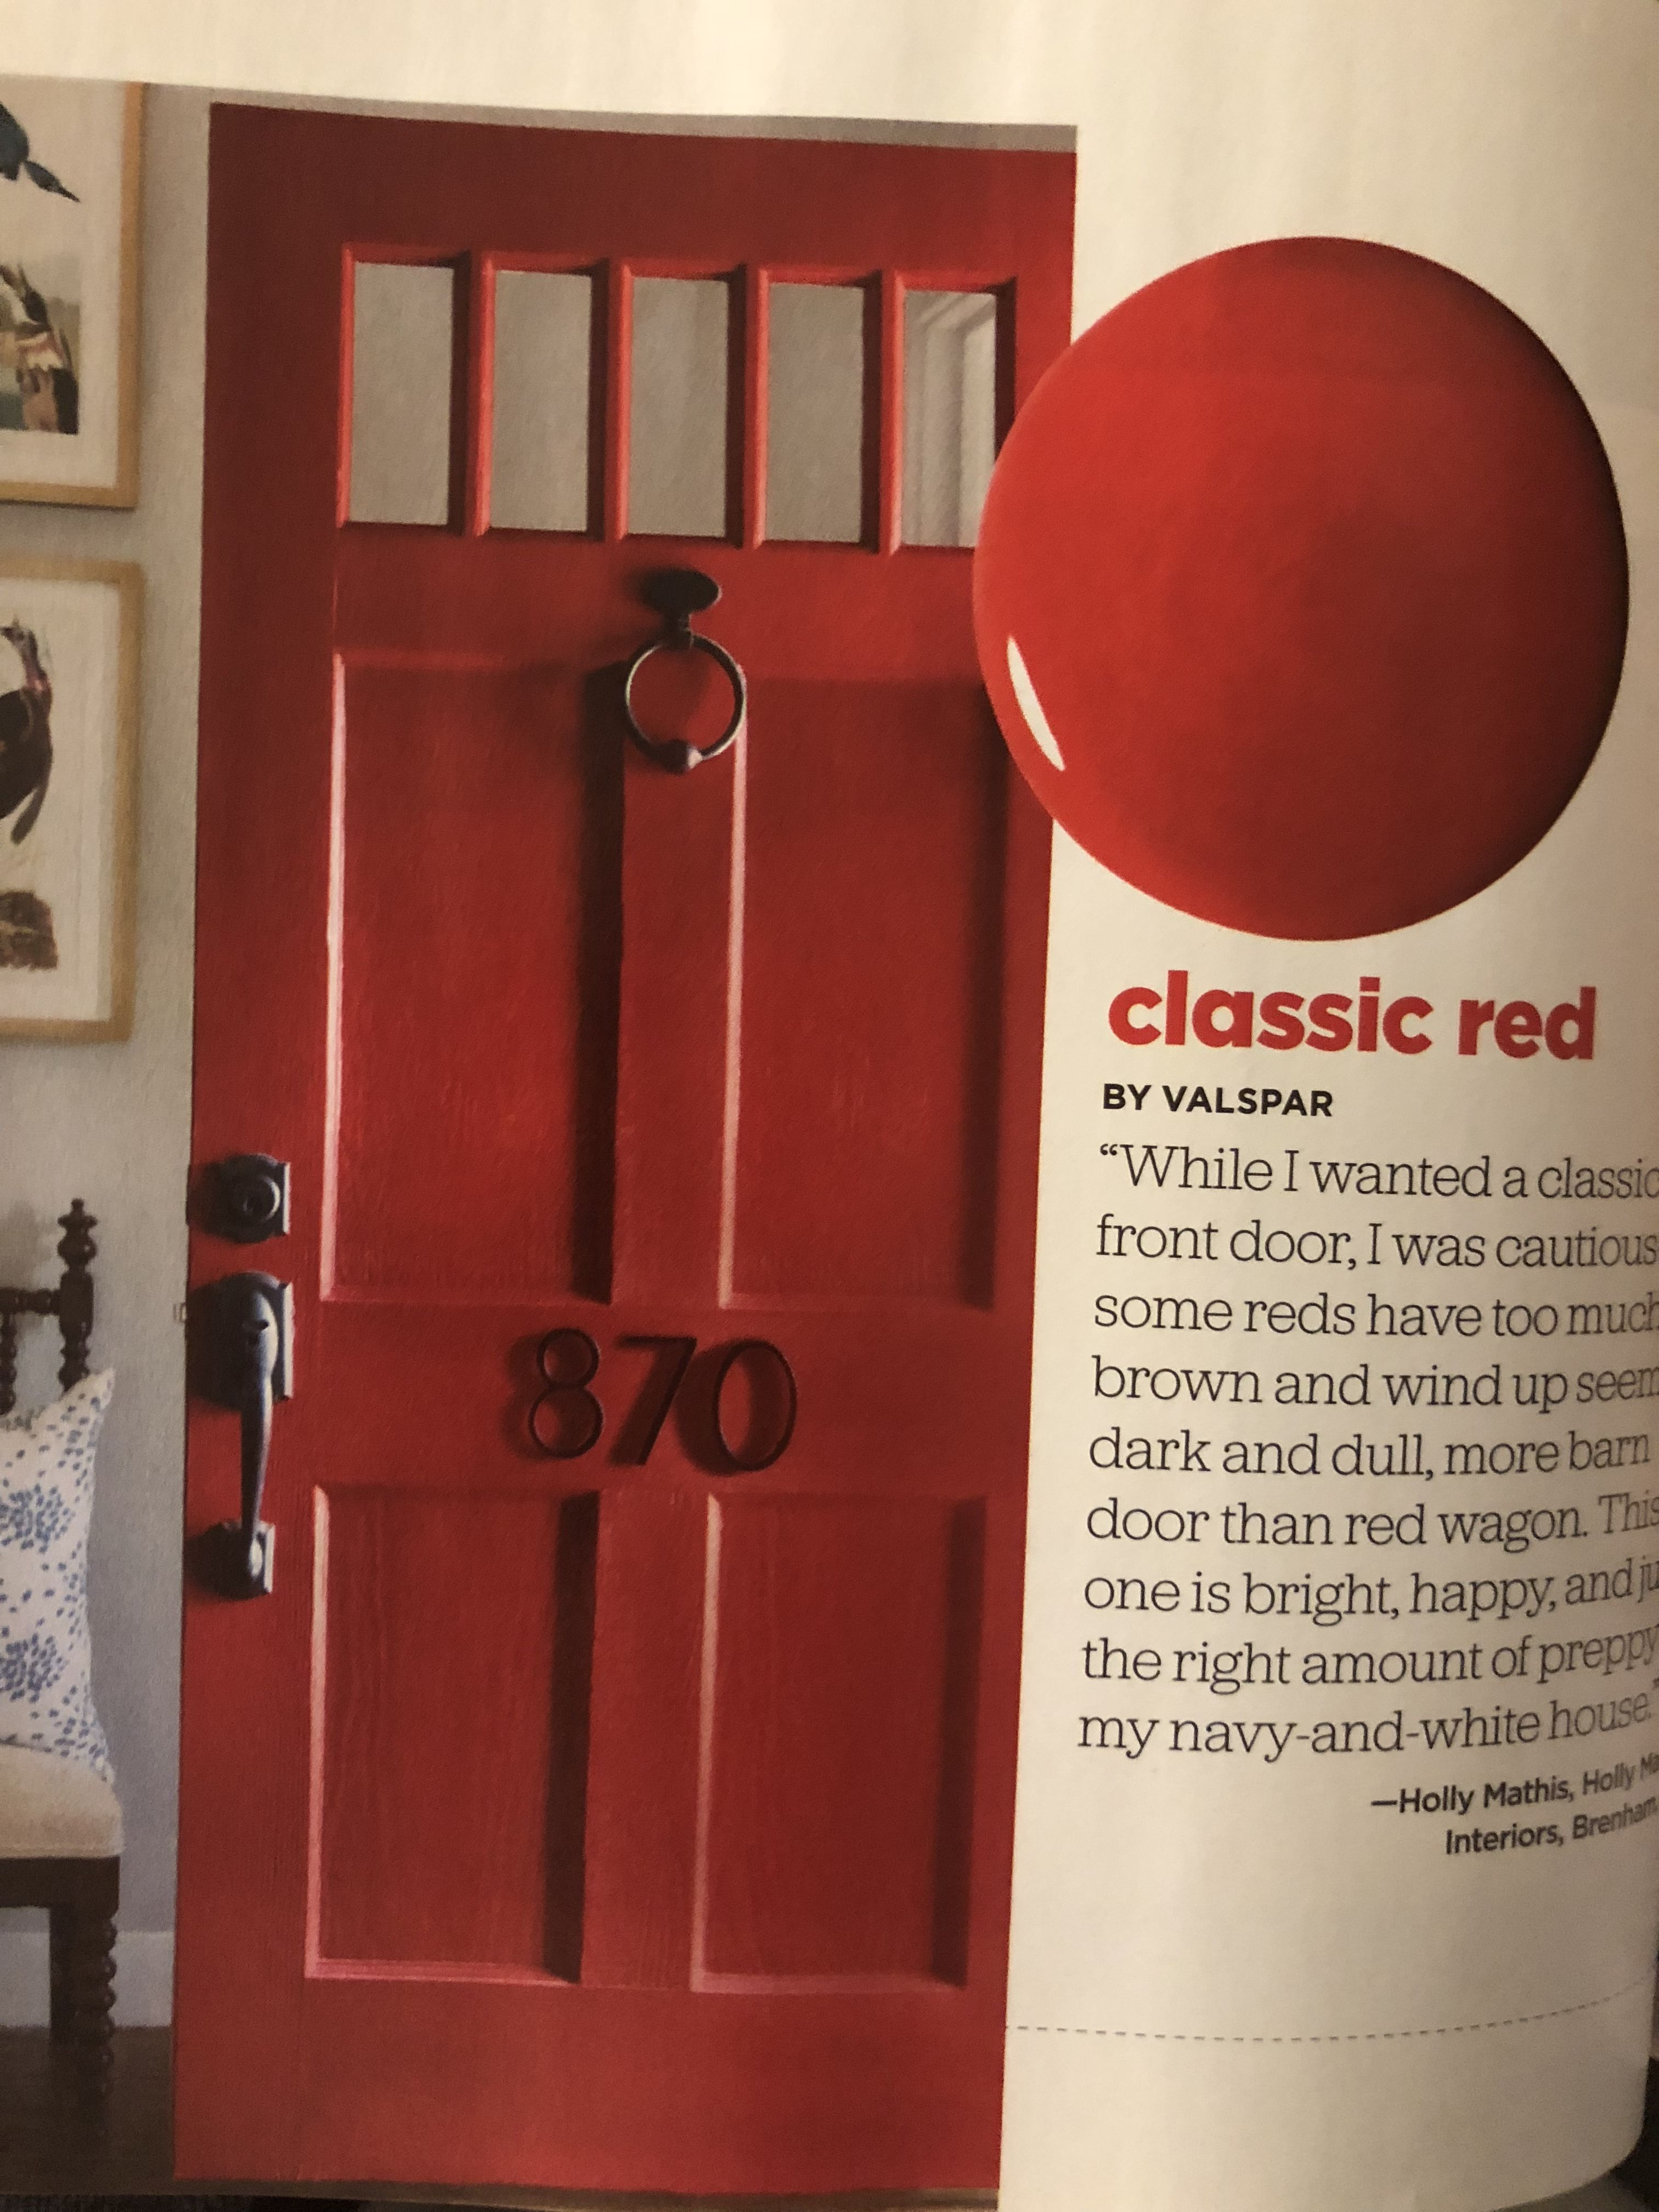 Classic Red By Valspar In 2019 Red Paint Colors Red Barns